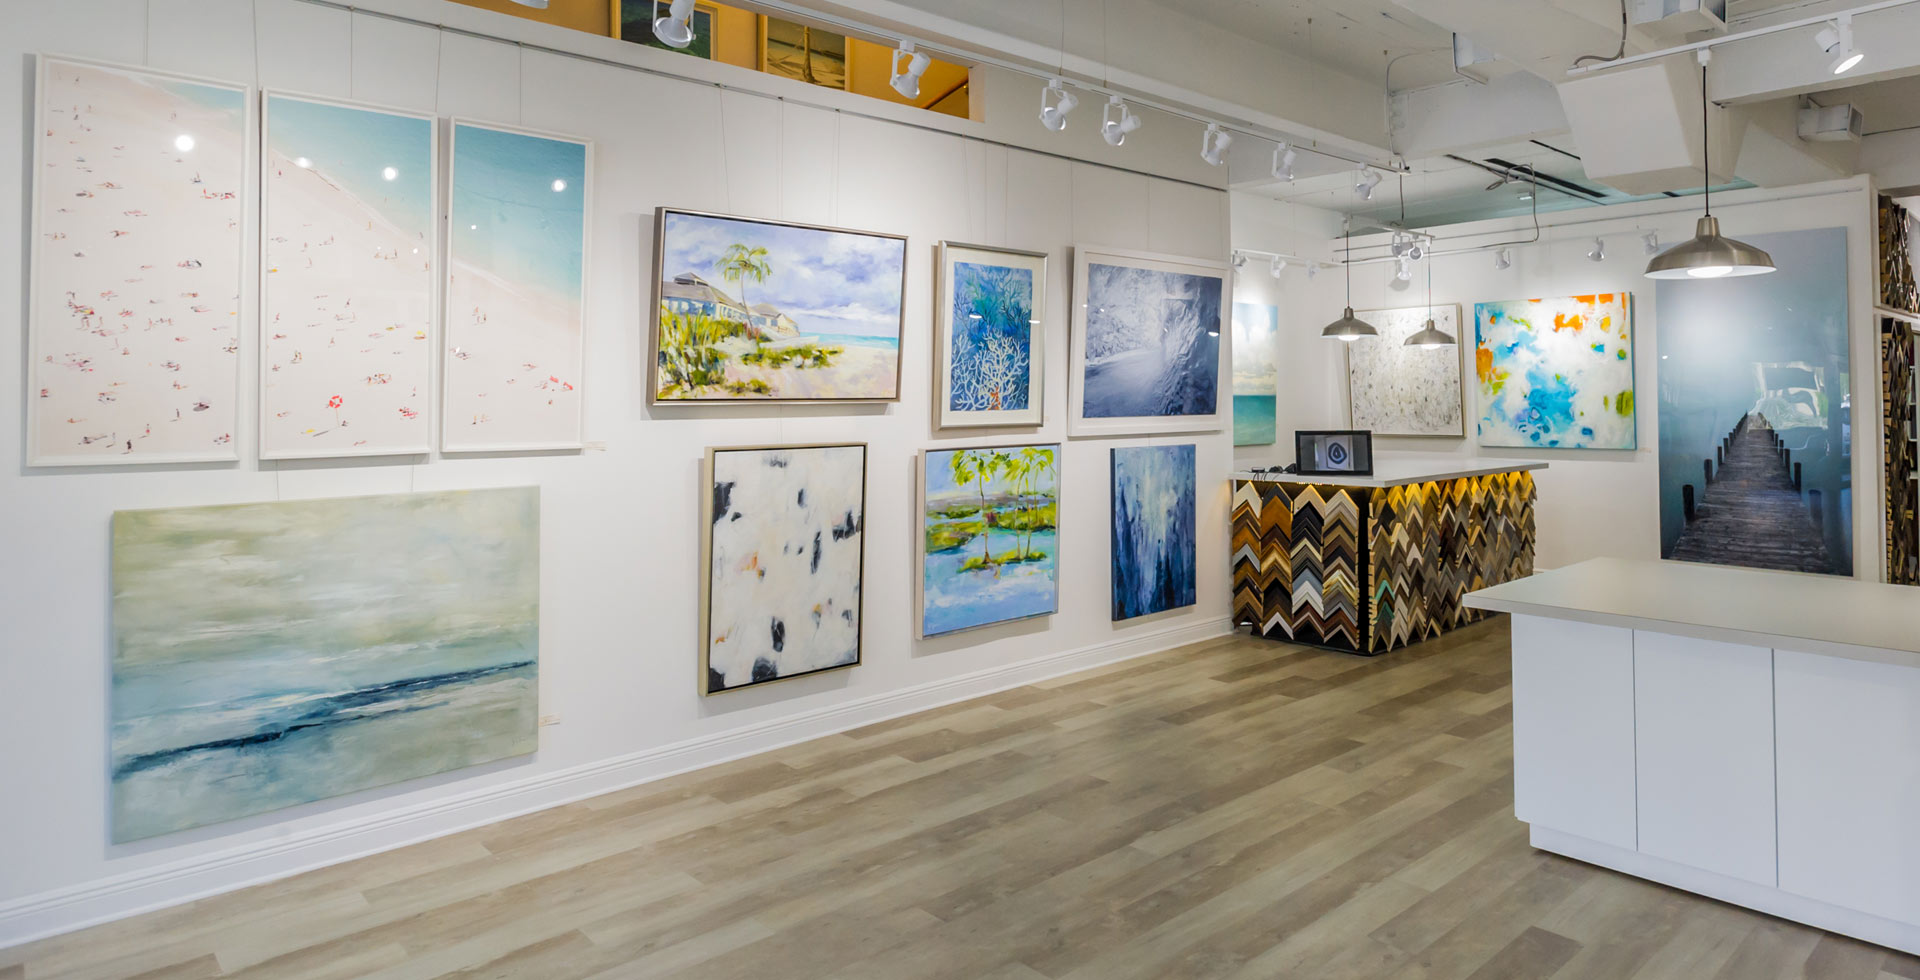 Art gallery full of local artists and photographers work | Aldecor Custom Framing & Gallery - Naples, Florida